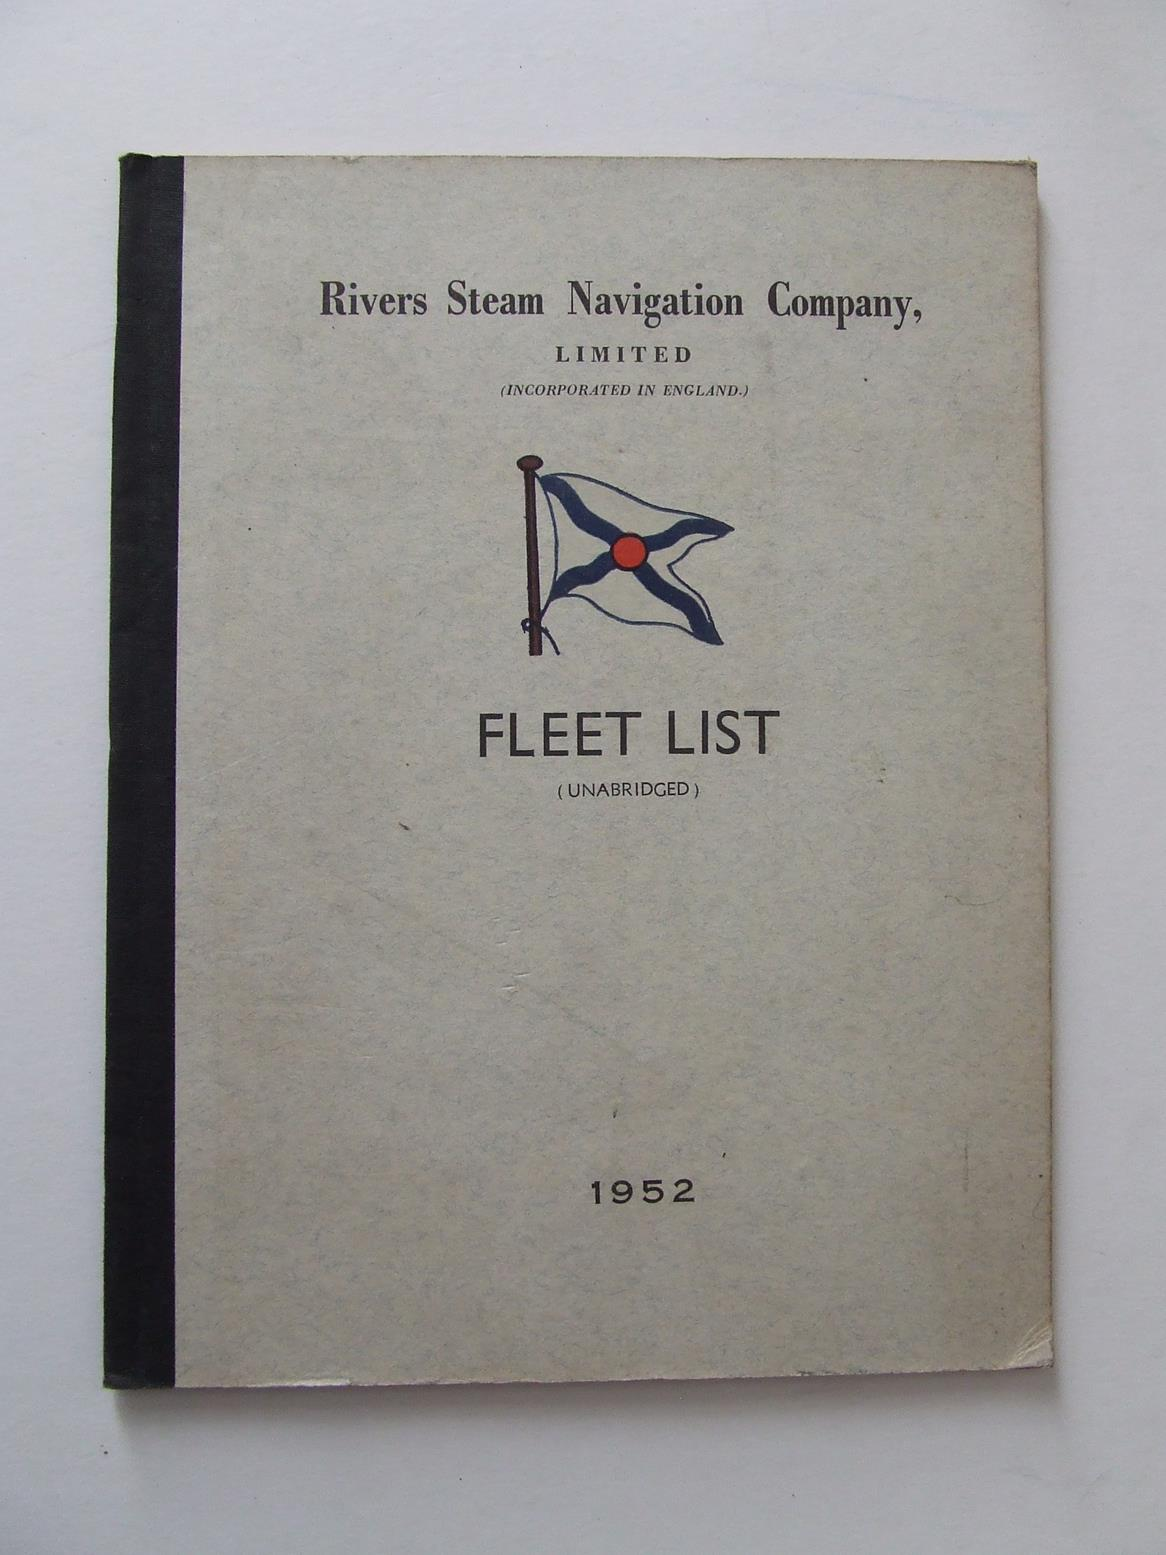 Rivers Steam Navigation Company, Limited. Fleet List (unabridged), 1952